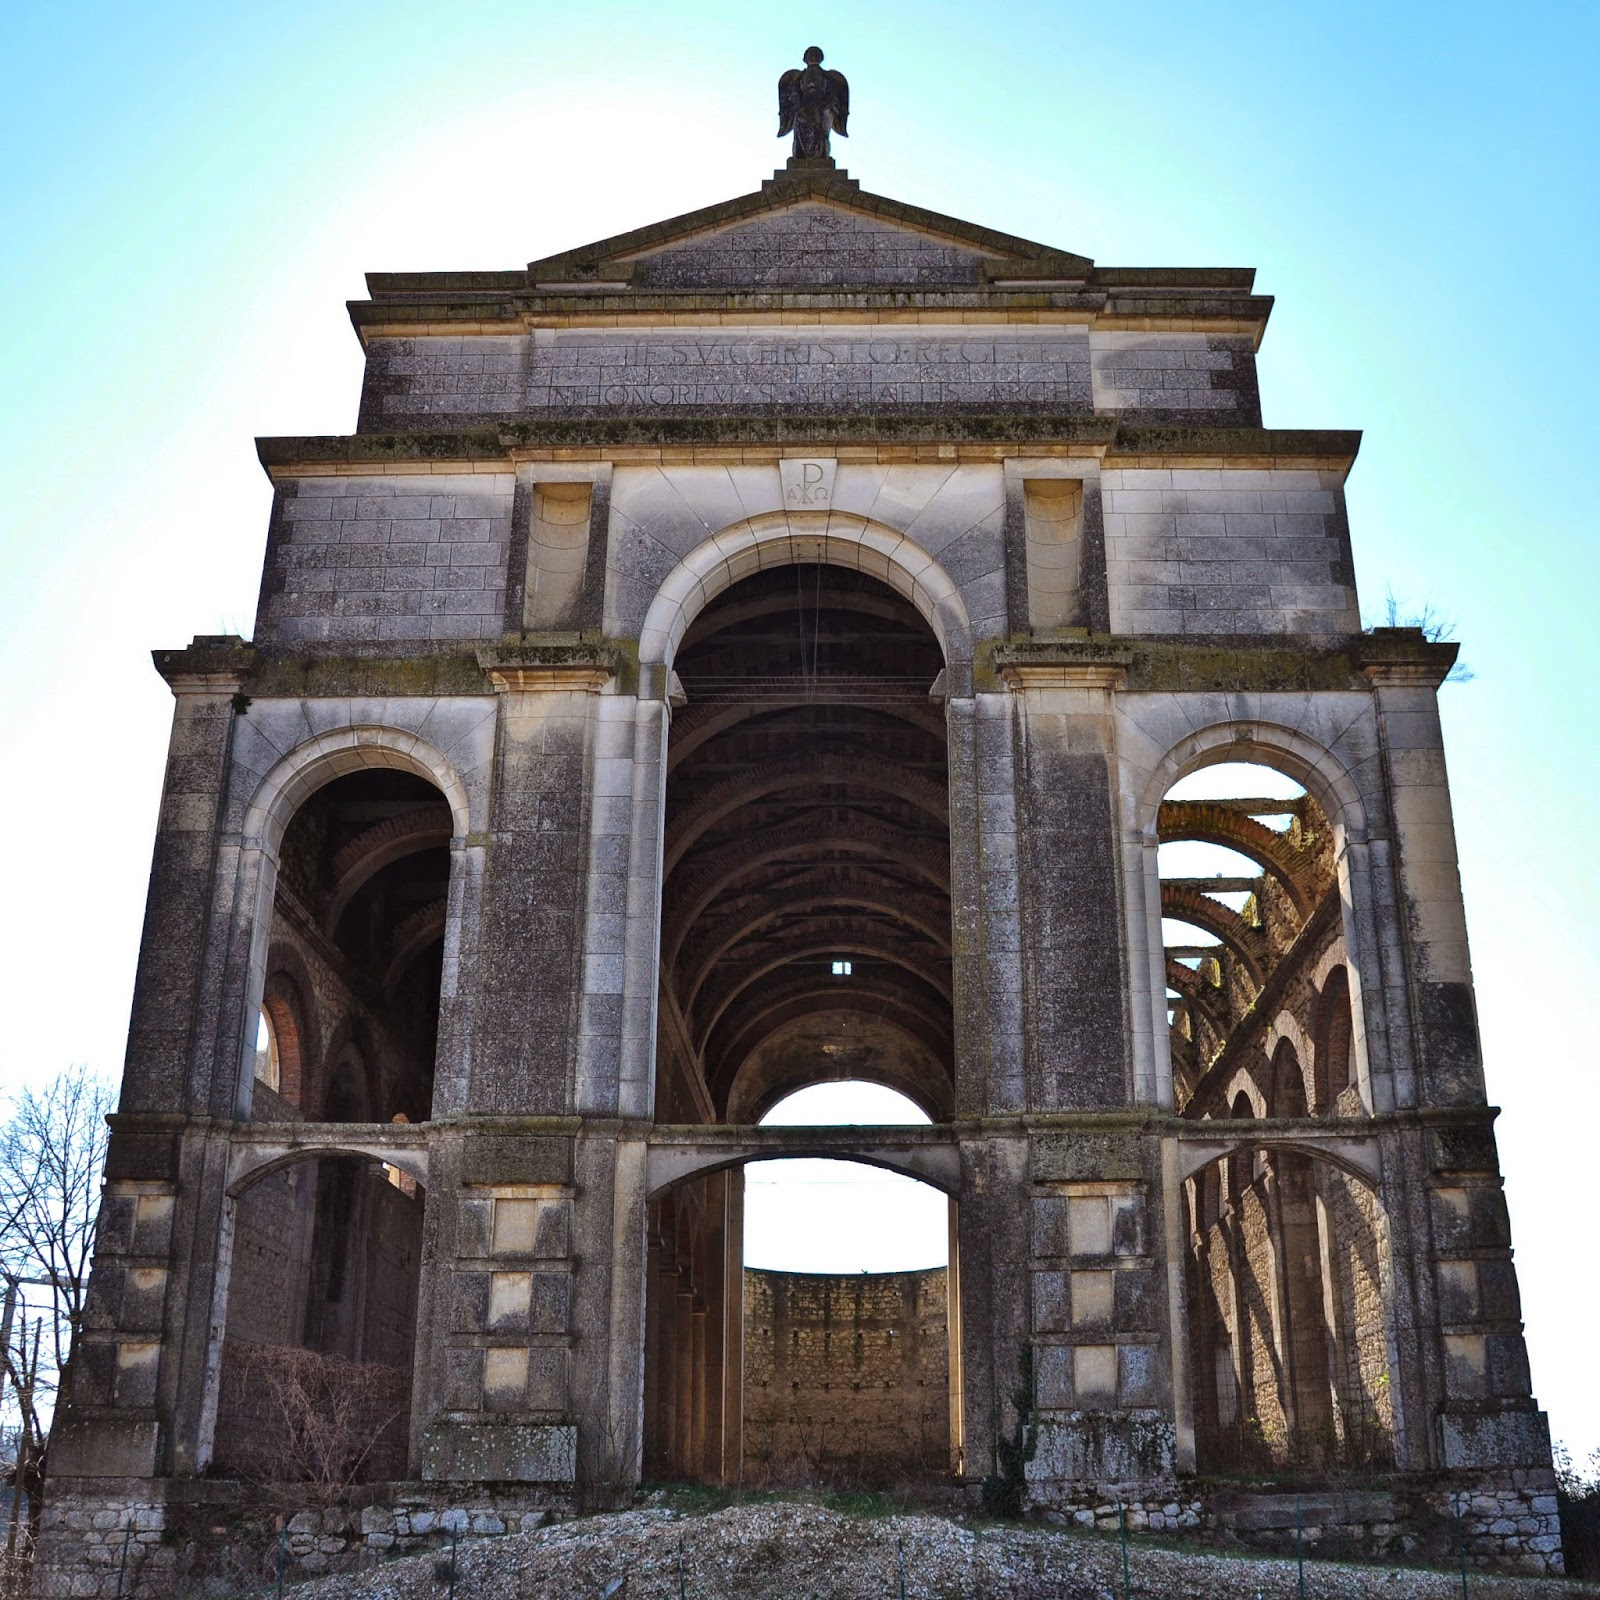 The incompleted duomo of Brendola, Colli Berici, Veneto